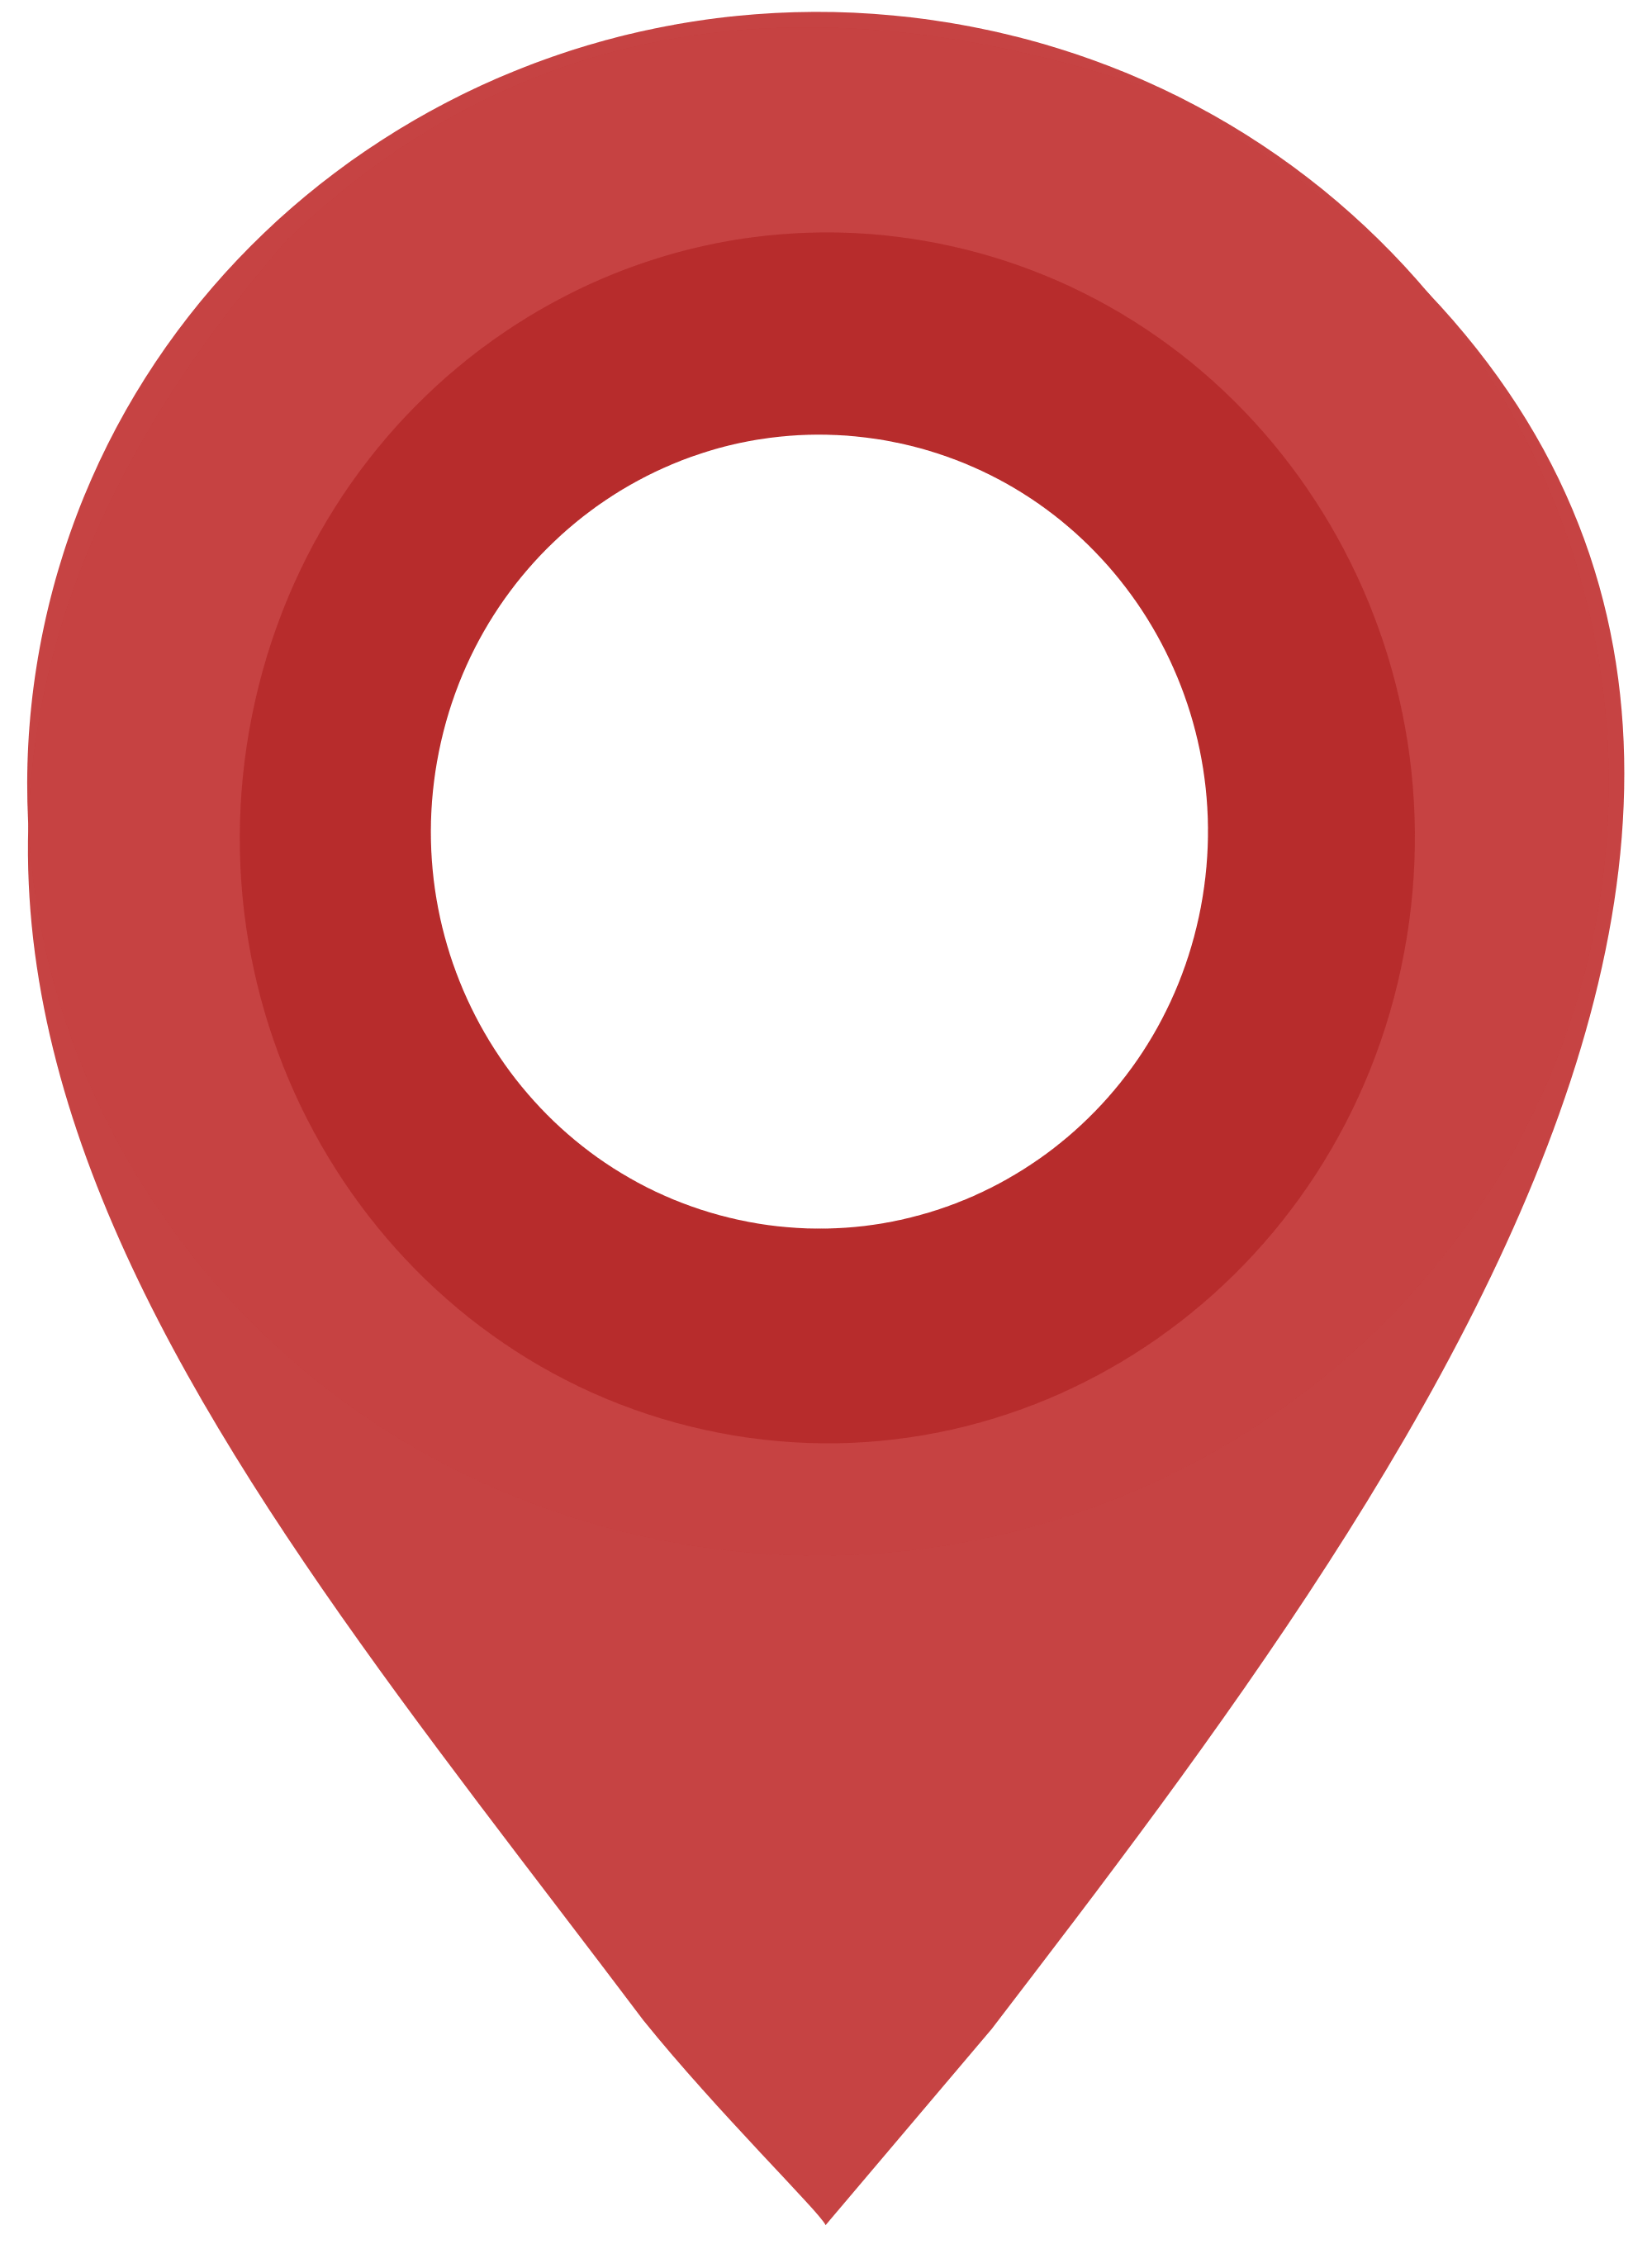 clipart-map-pin-2 Drop Pin In Google Maps on apple maps drop pin, punch maps drop pin, iphone maps drop pin, google map placemark, facebook drop pin, google drop pin at la turkey, google map icon drop, google map pin icon,